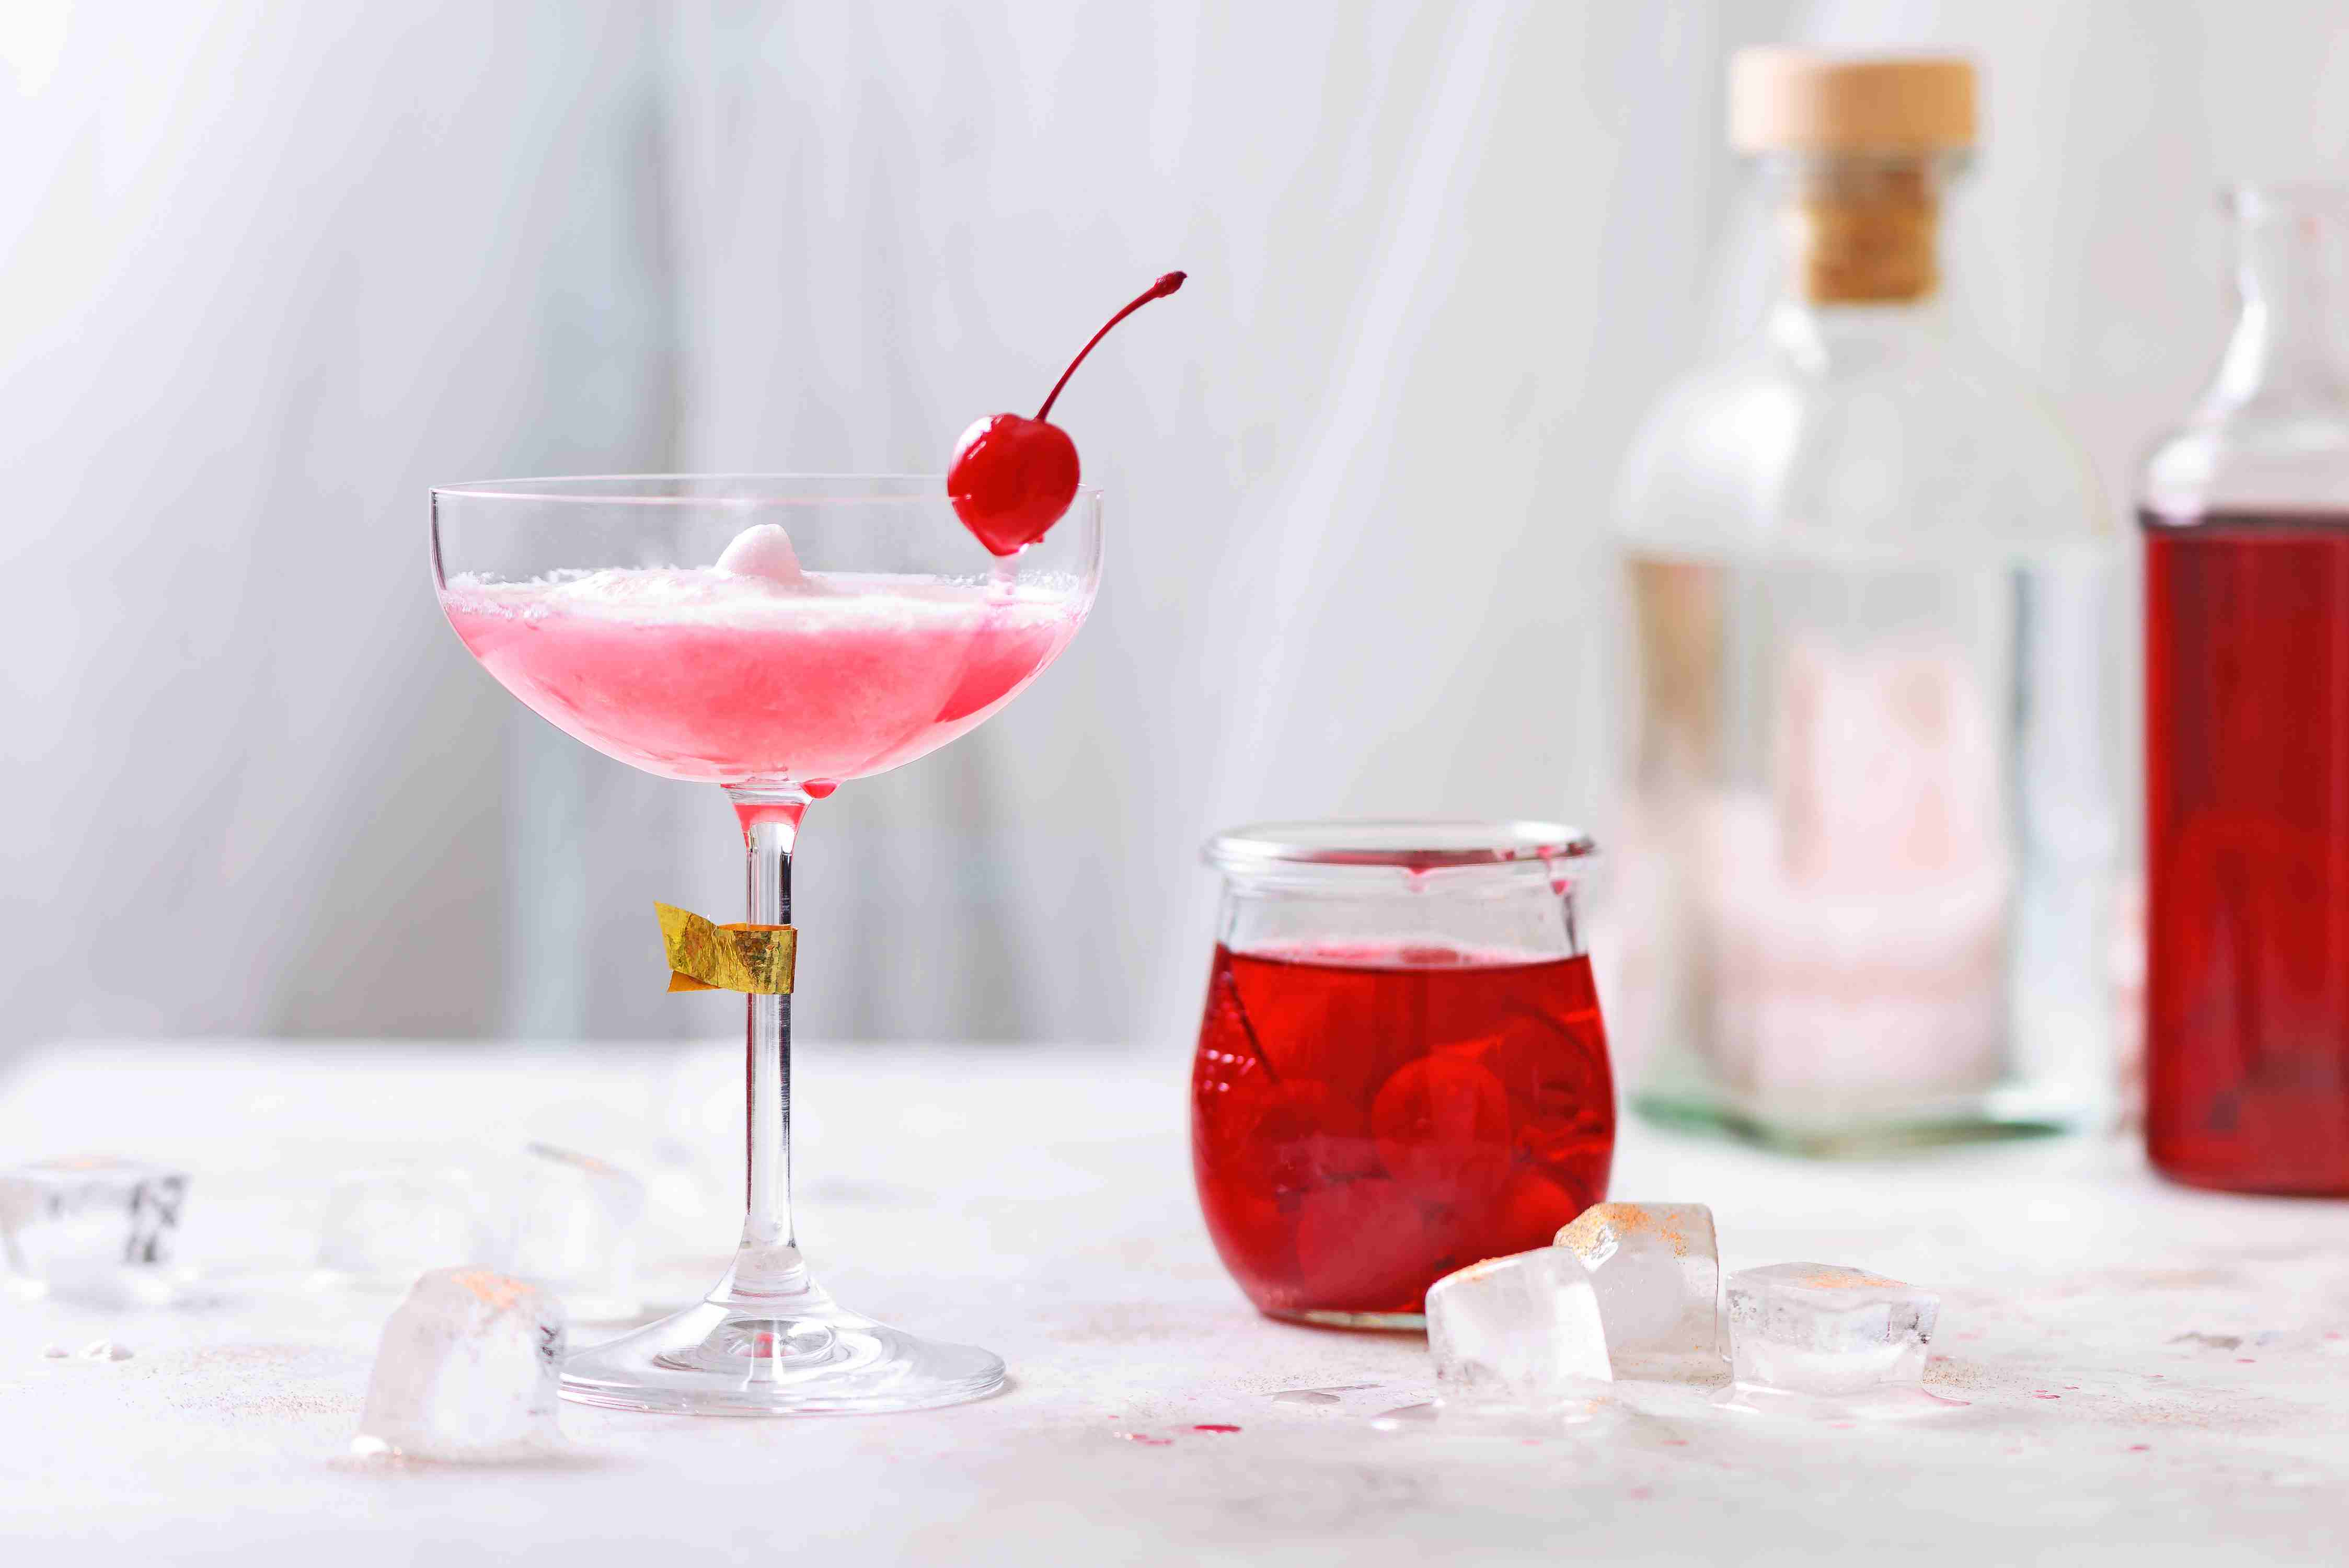 Pink lady cocktail garnished with a maraschino cherry